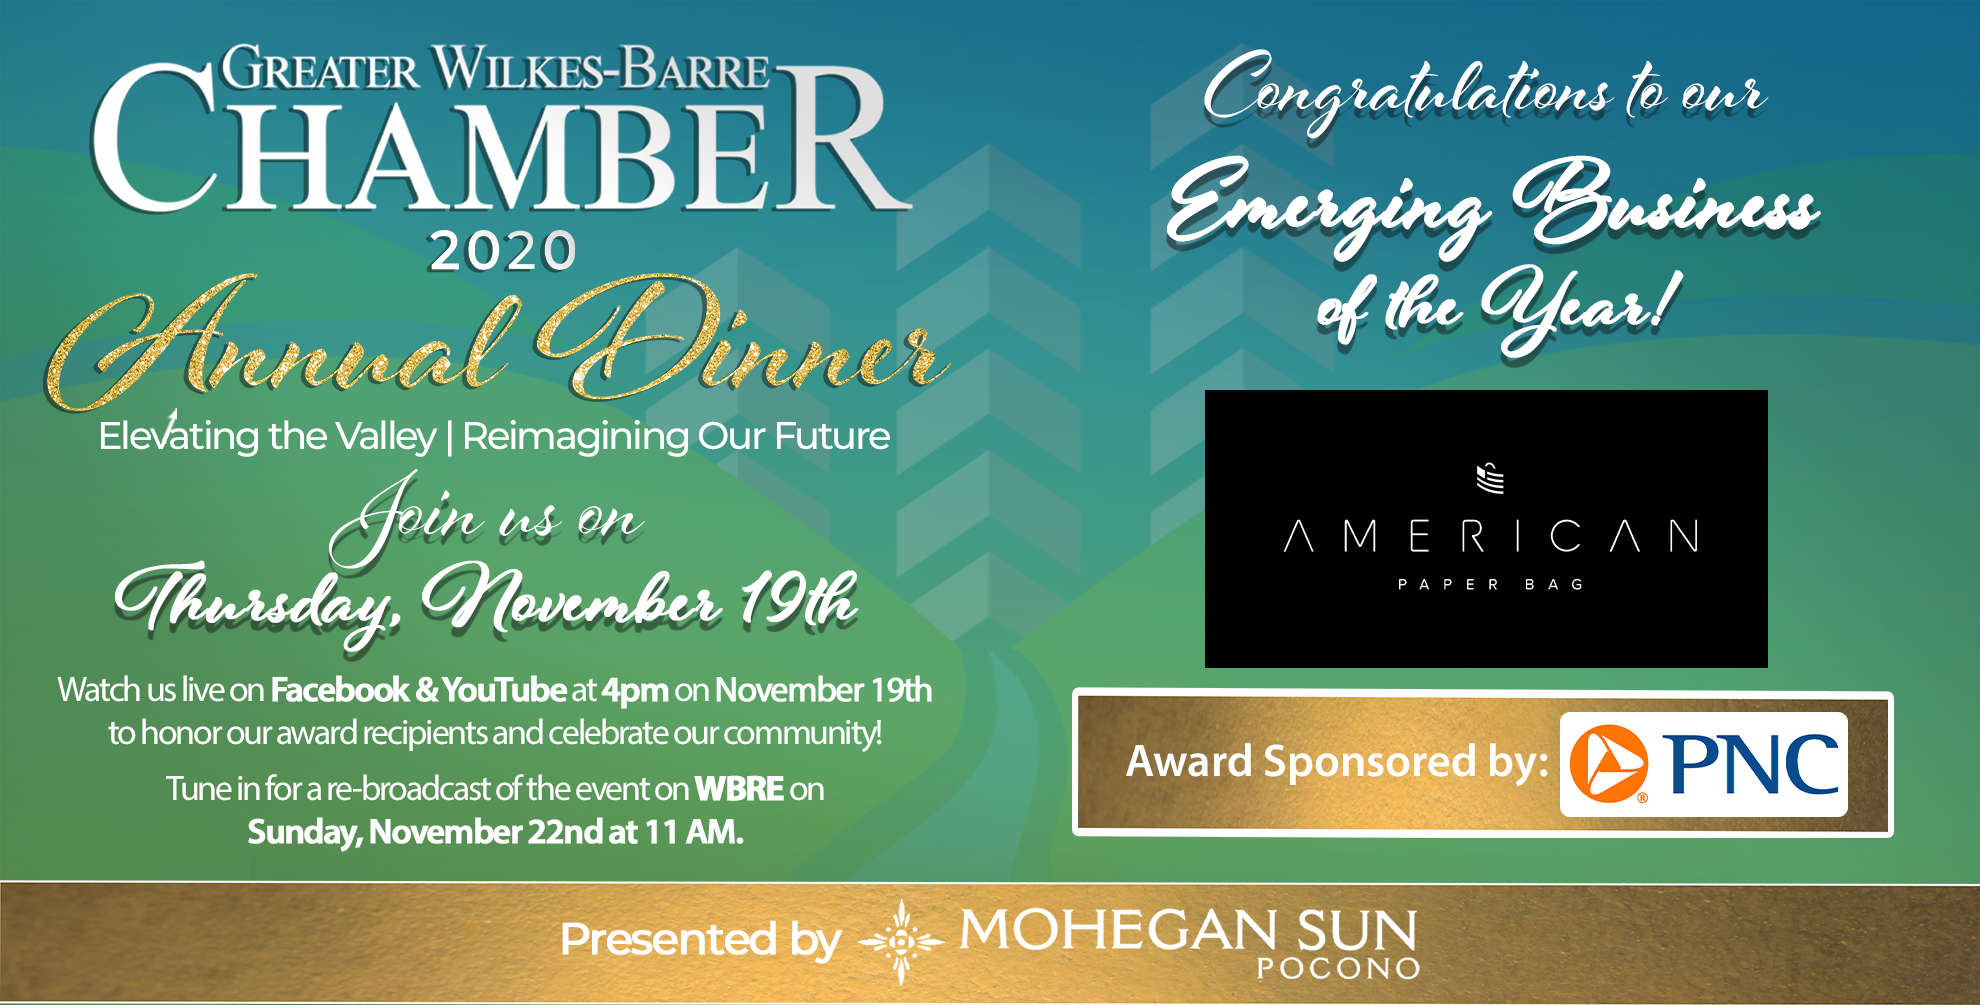 Meet Our 2020 Emerging Business of the Year: American Paper Bag